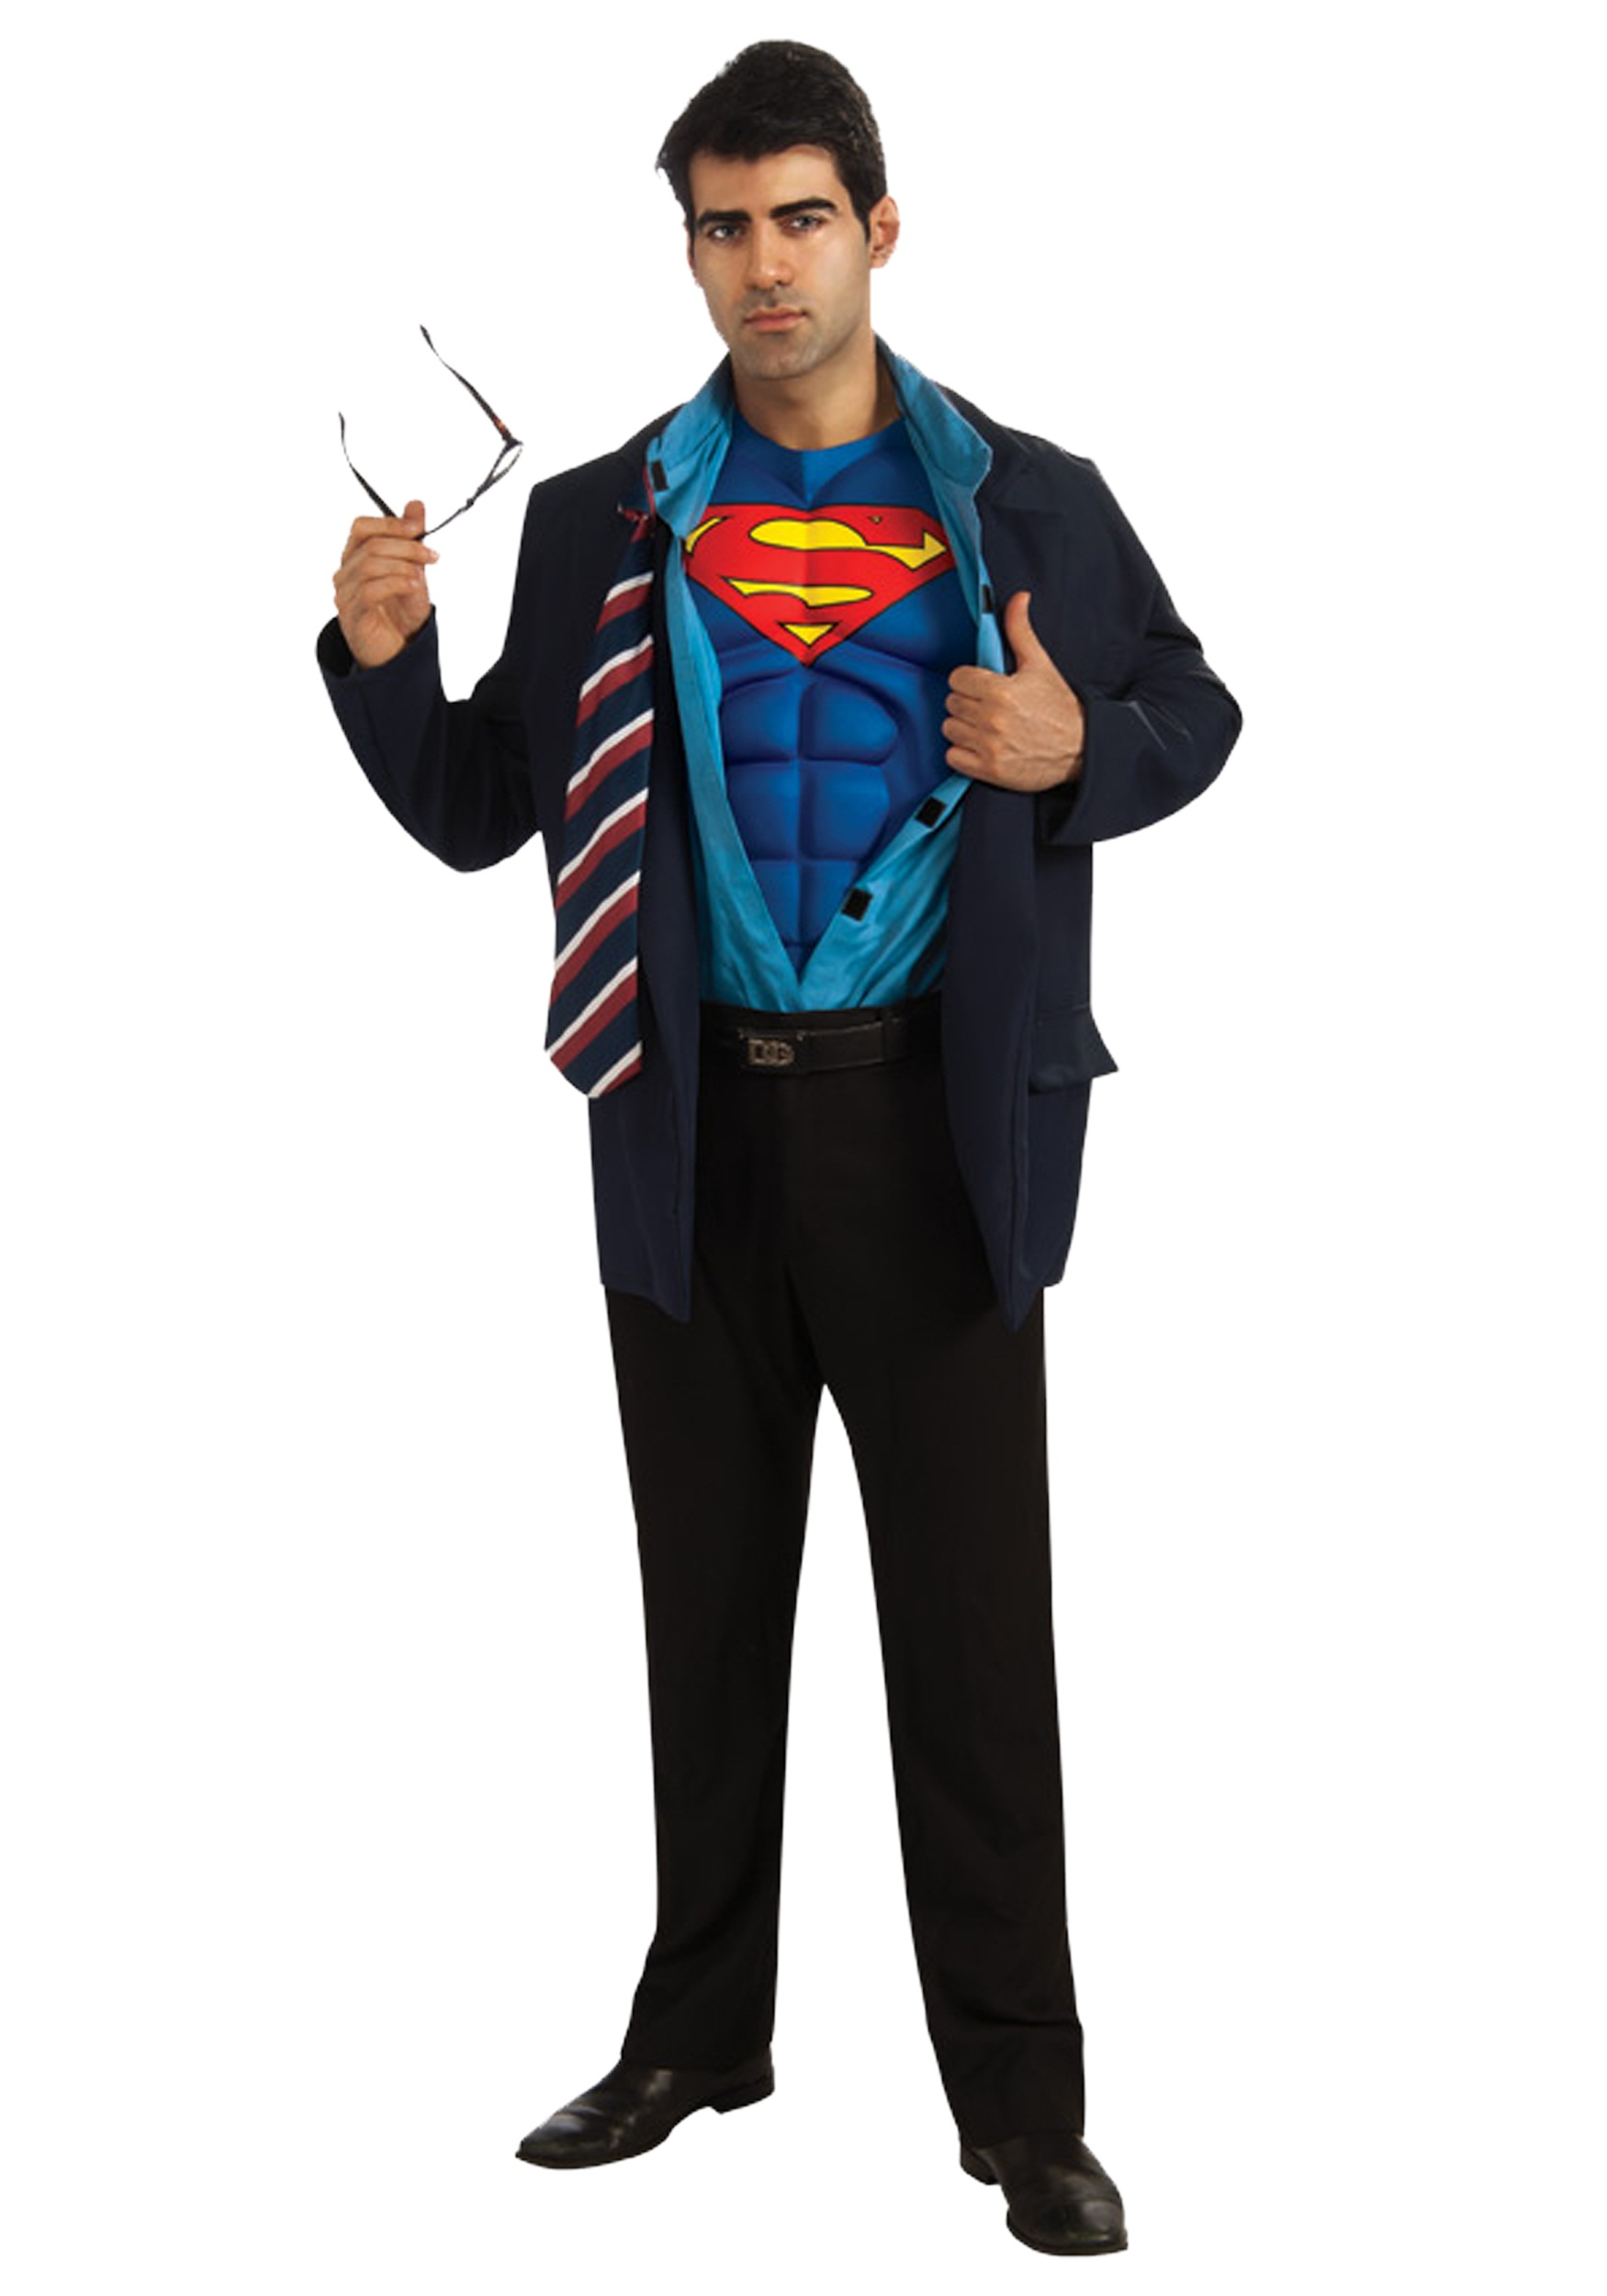 Superhero Shirts with Capes. Party & Occasions. Halloween. All Halloween Costumes. All Halloween Costumes. Superhero Shirts with Capes. Product - Justice League Mens Superman Adult Dc Superhero Costume Top Shirt. Product Image. Price $ Product Title. Justice League Mens Superman Adult Dc Superhero Costume Top Shirt.